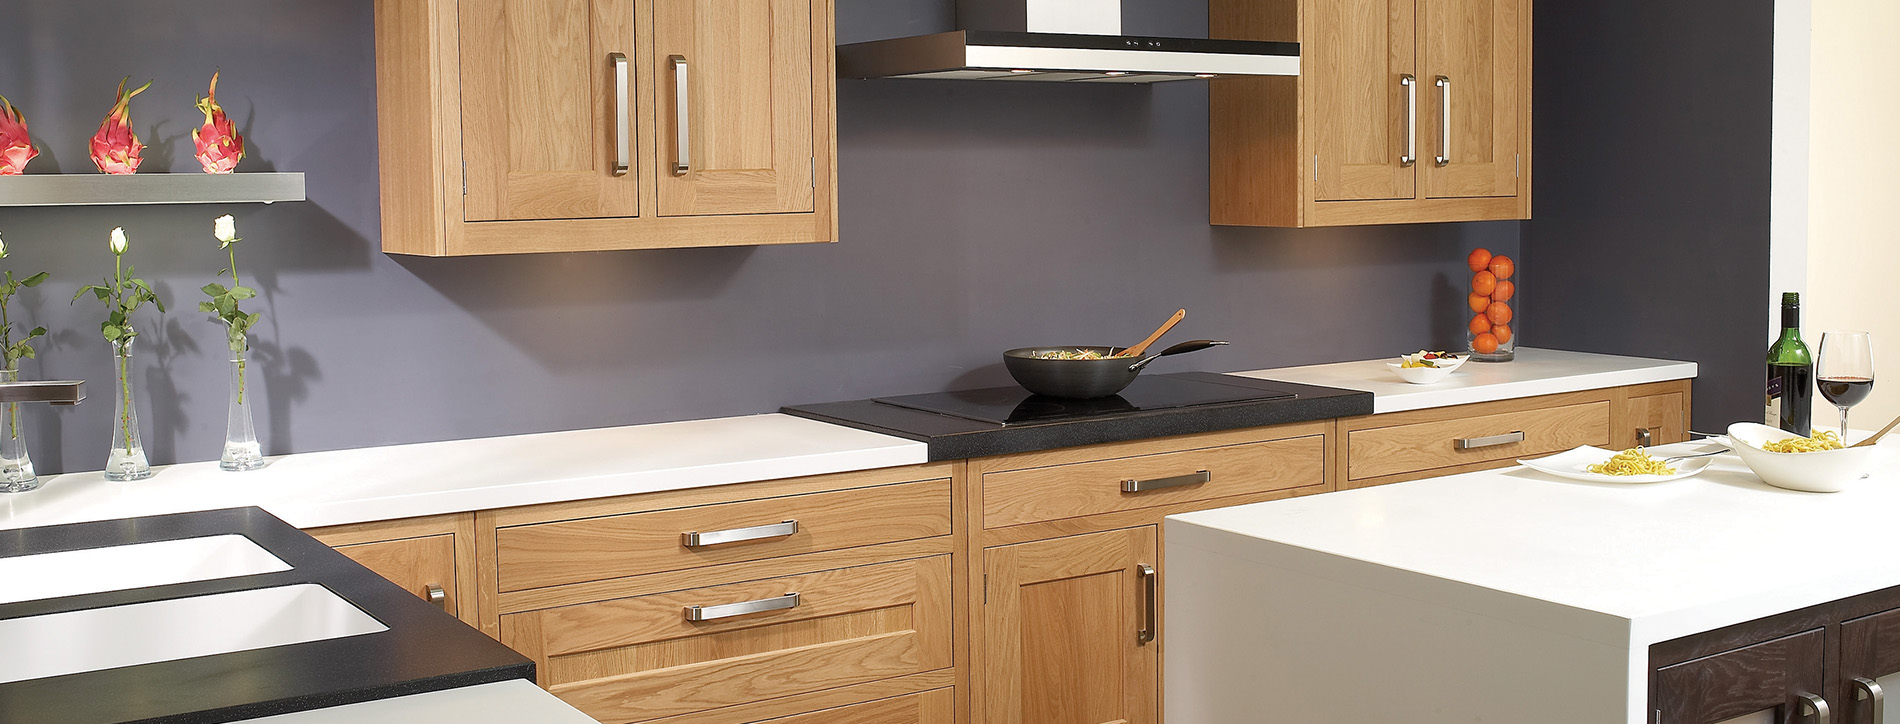 100 kitchen design leicester commercial kitchen design meas